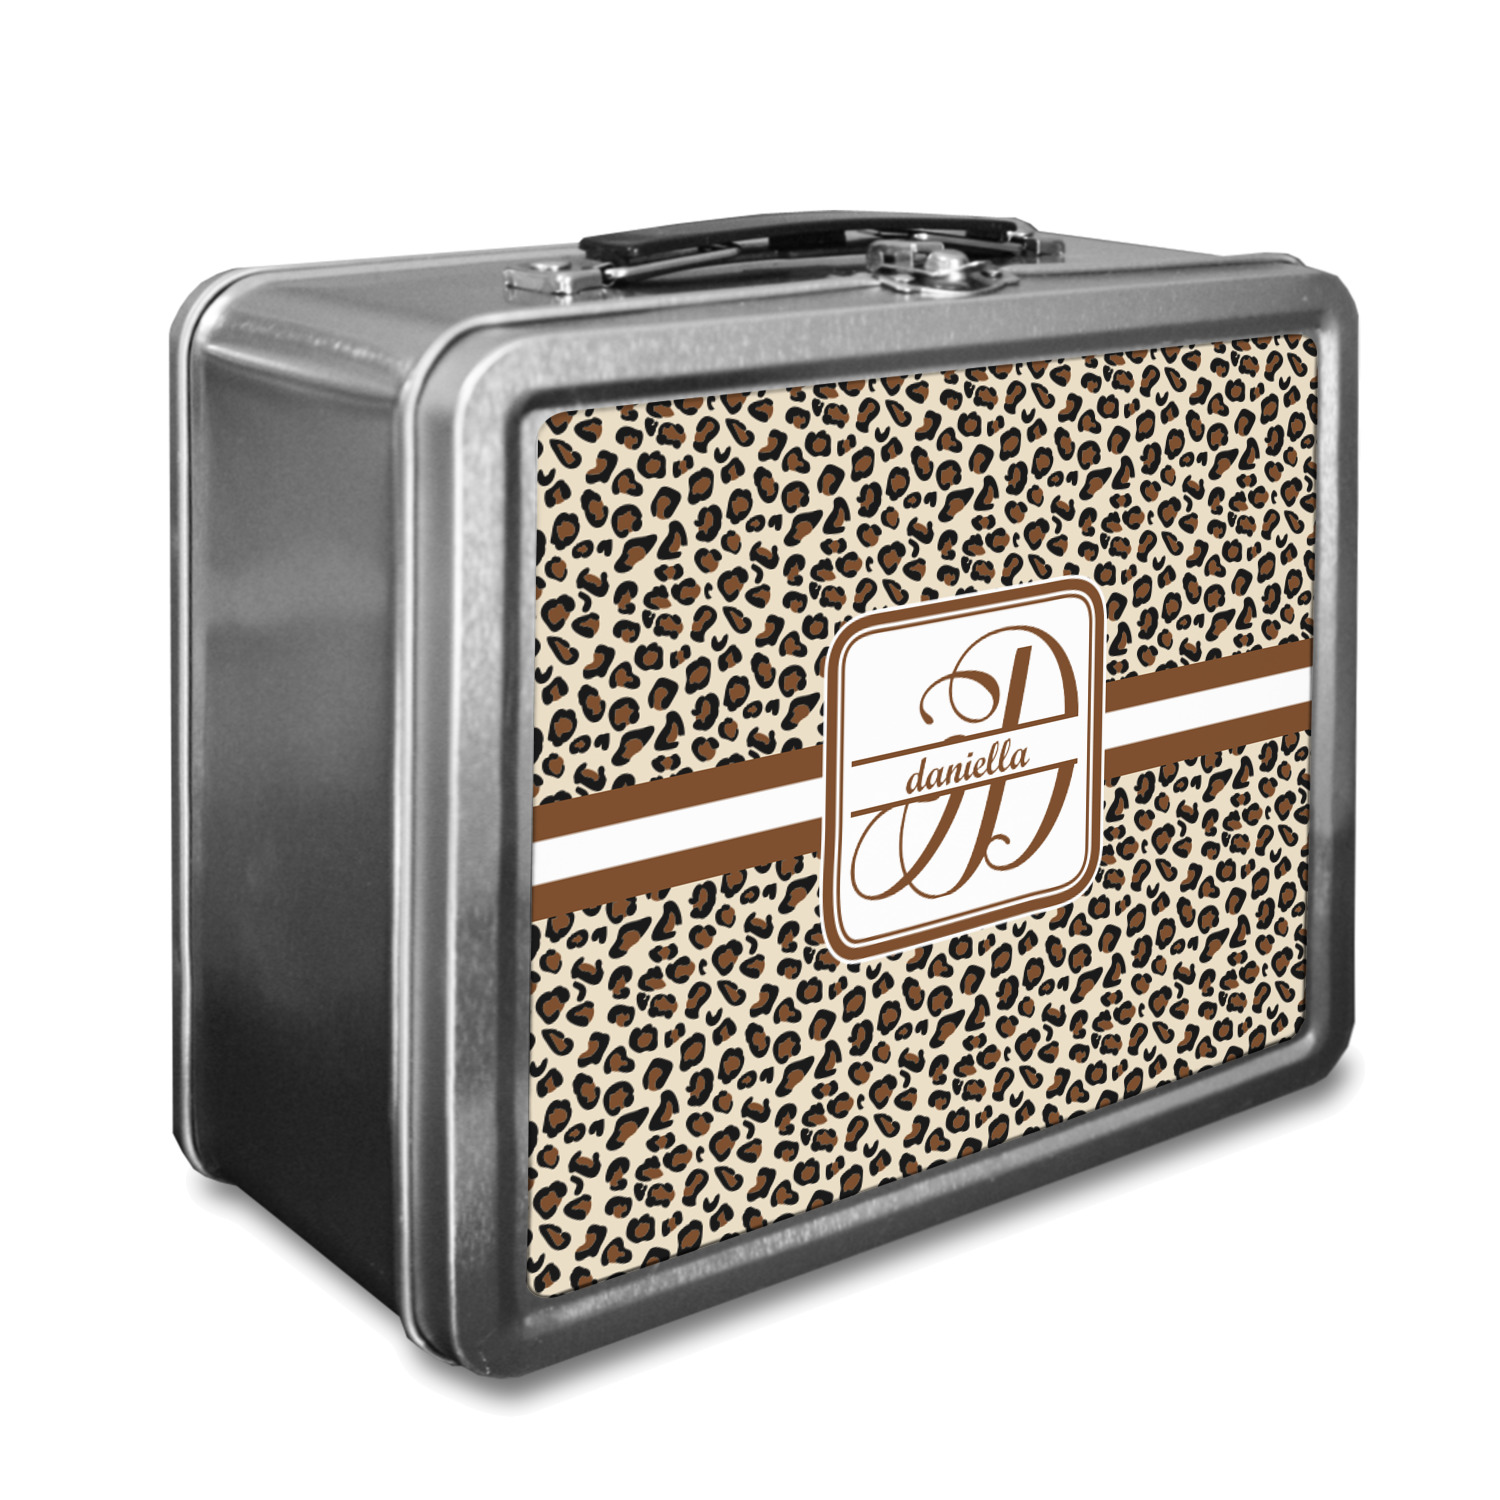 Leopard Print Lunch Box Personalized